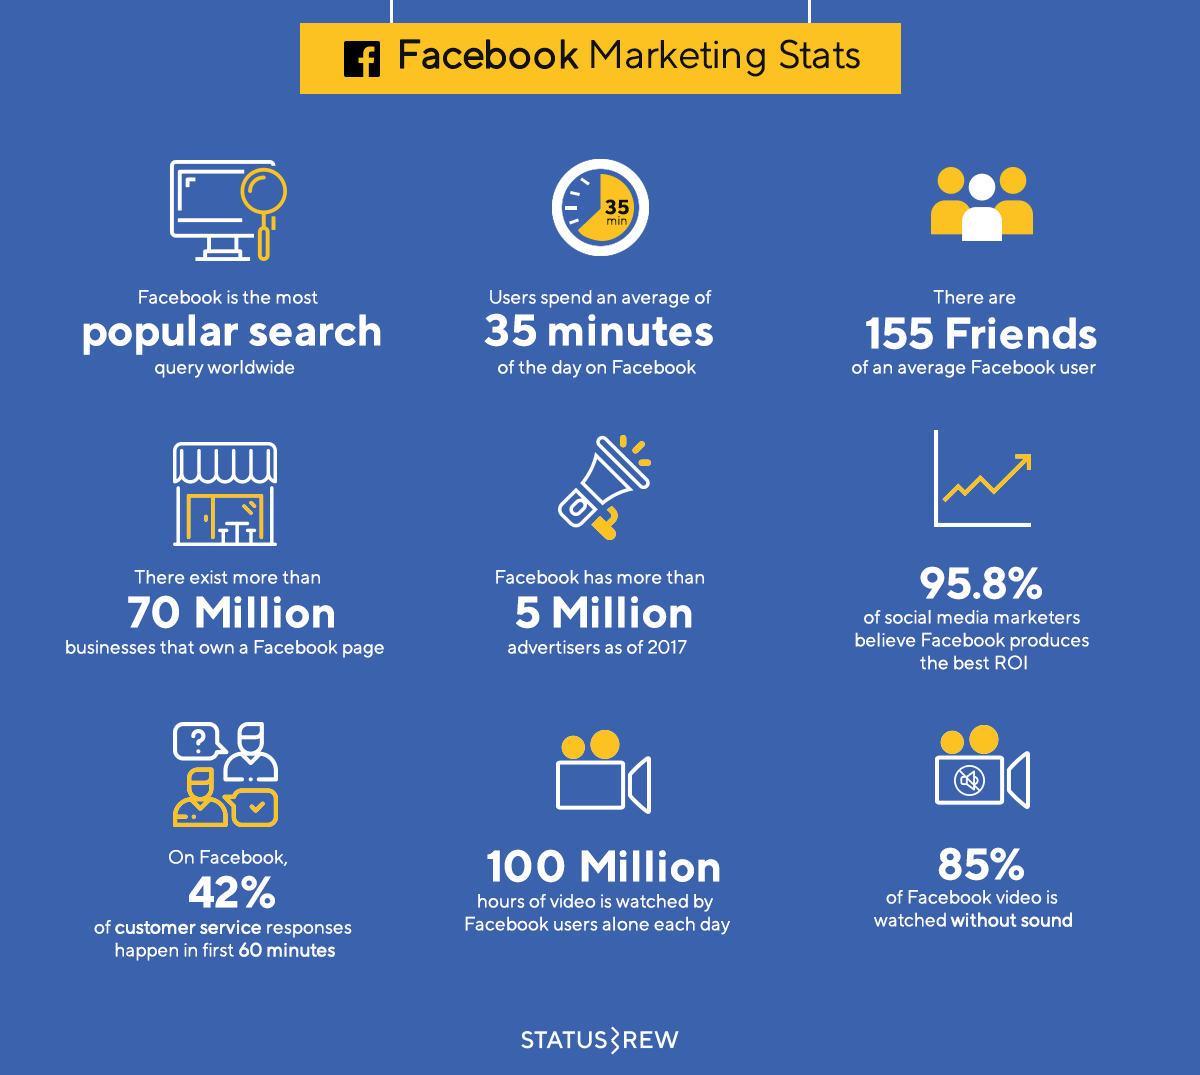 Facebook Marketing Statistics Infographic